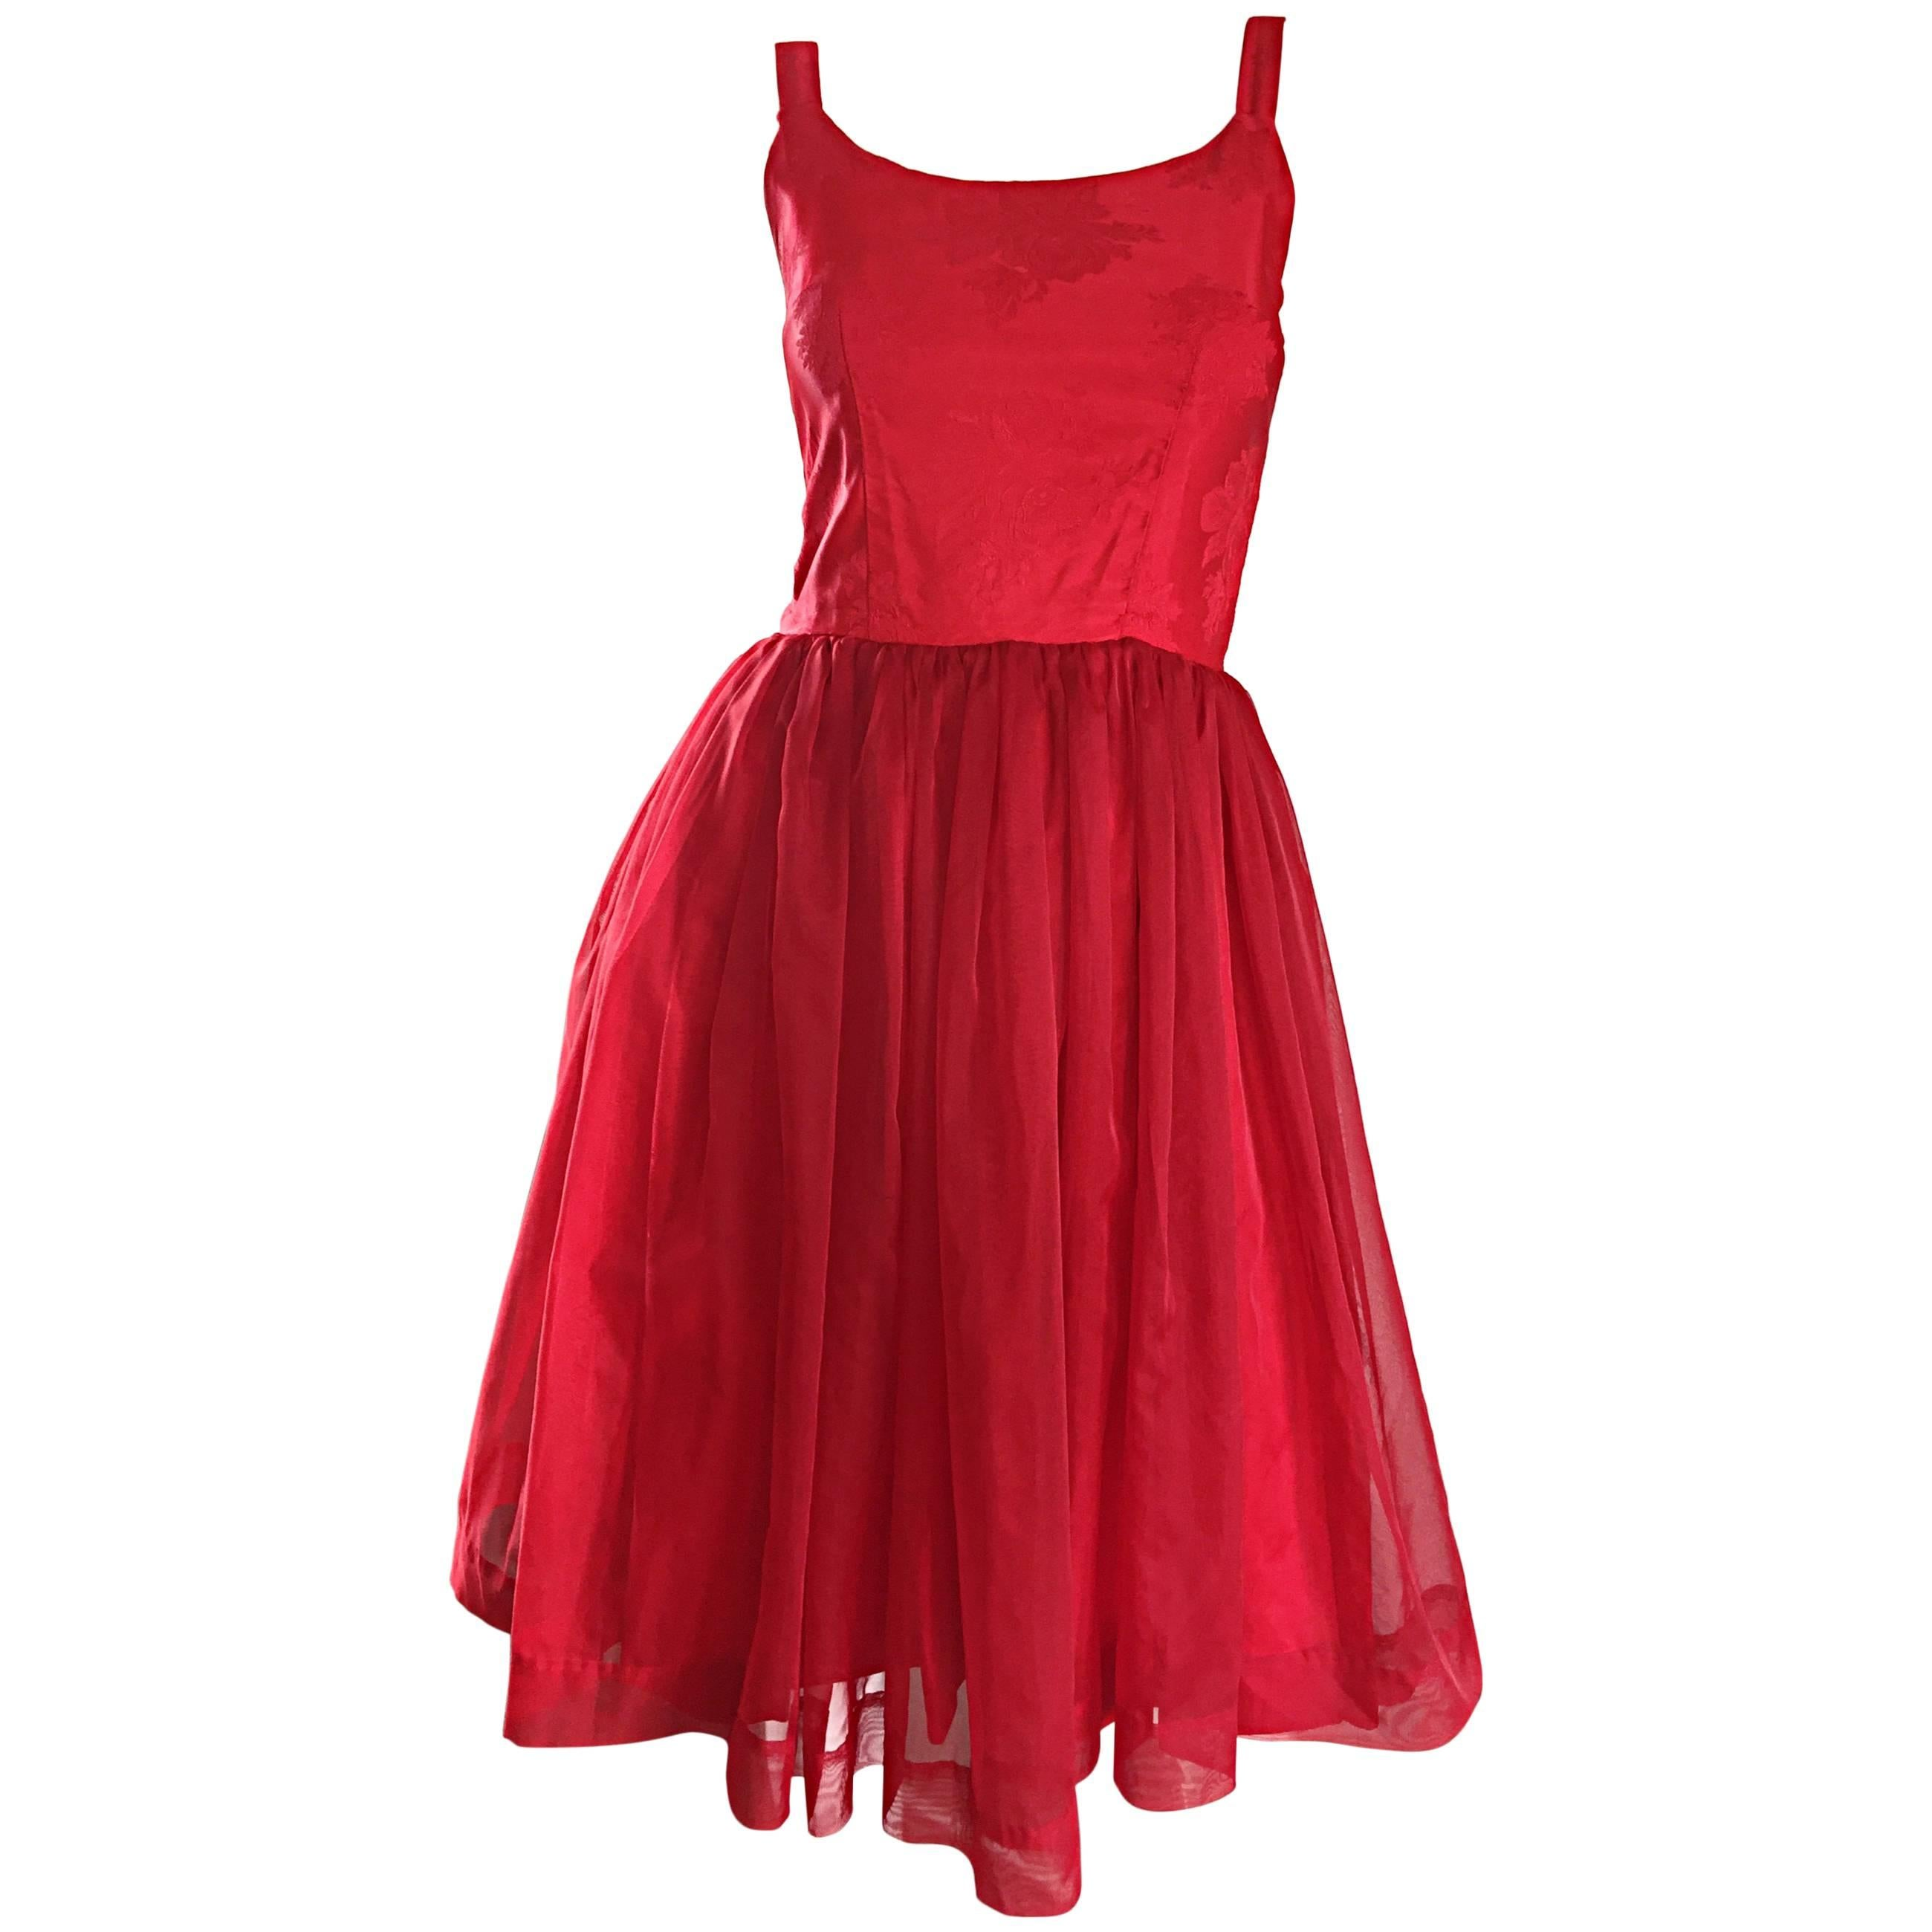 Gorgeous 1950s 50s Lipstick Red Demi Couture Silk Brocade Cocktail Dress